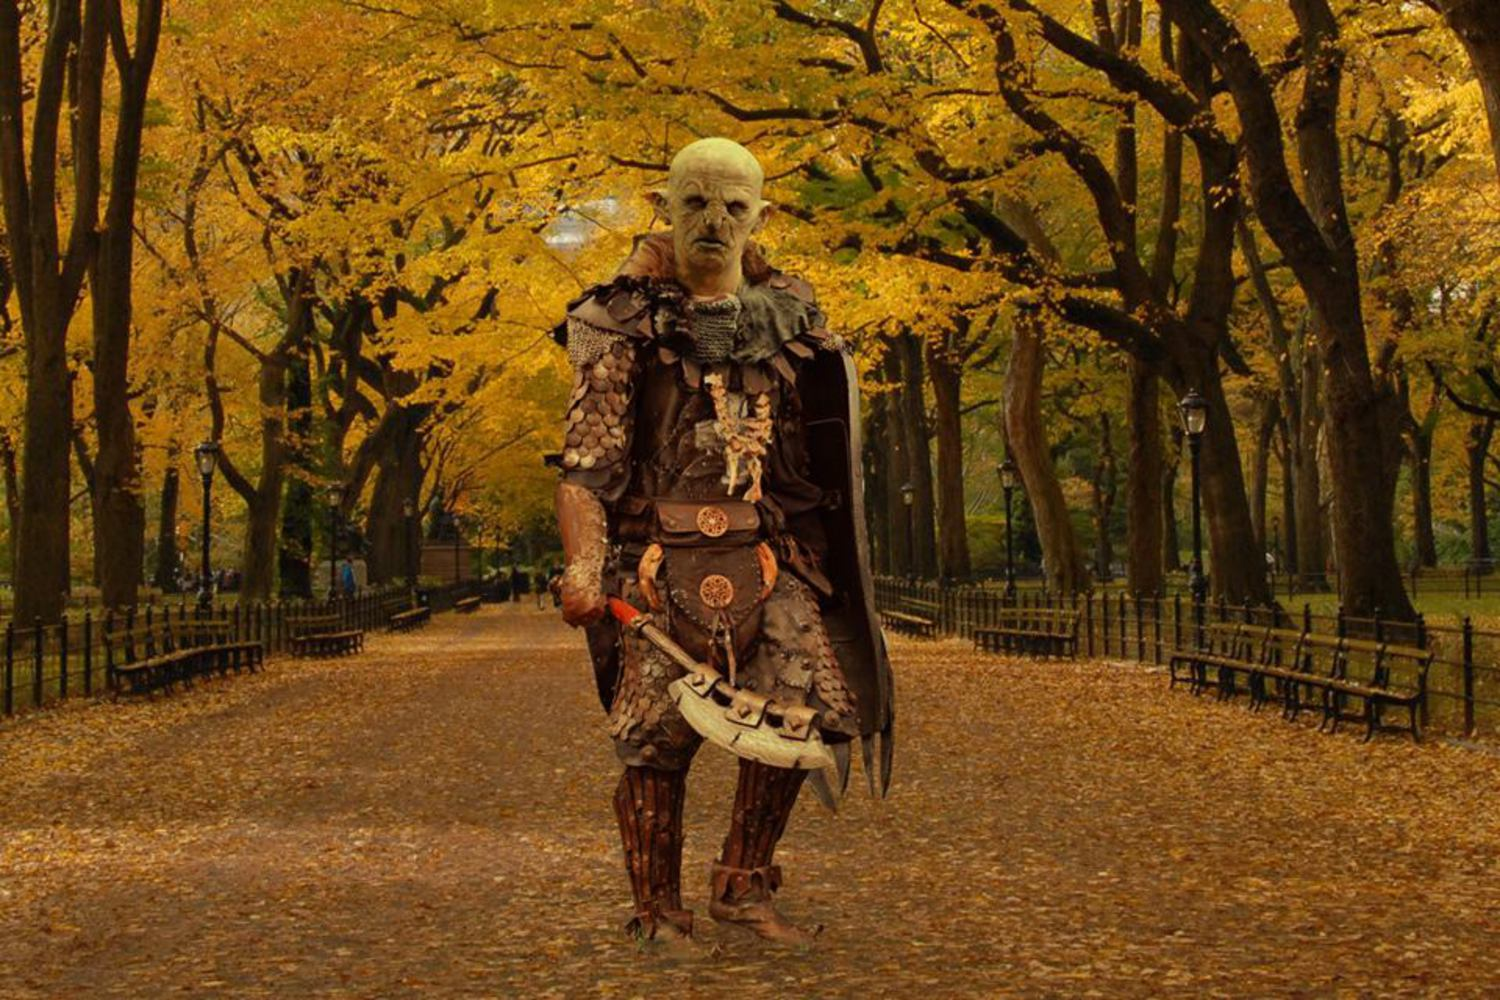 """I live in East New York and commute into Gorgoroth. I love my job. I design the war paint for Uruk chieftains. I might have the only artistic job in Mordor, except for maybe the Dark Lord's architect. But I think the Dark Lord designs his architecture himself."""